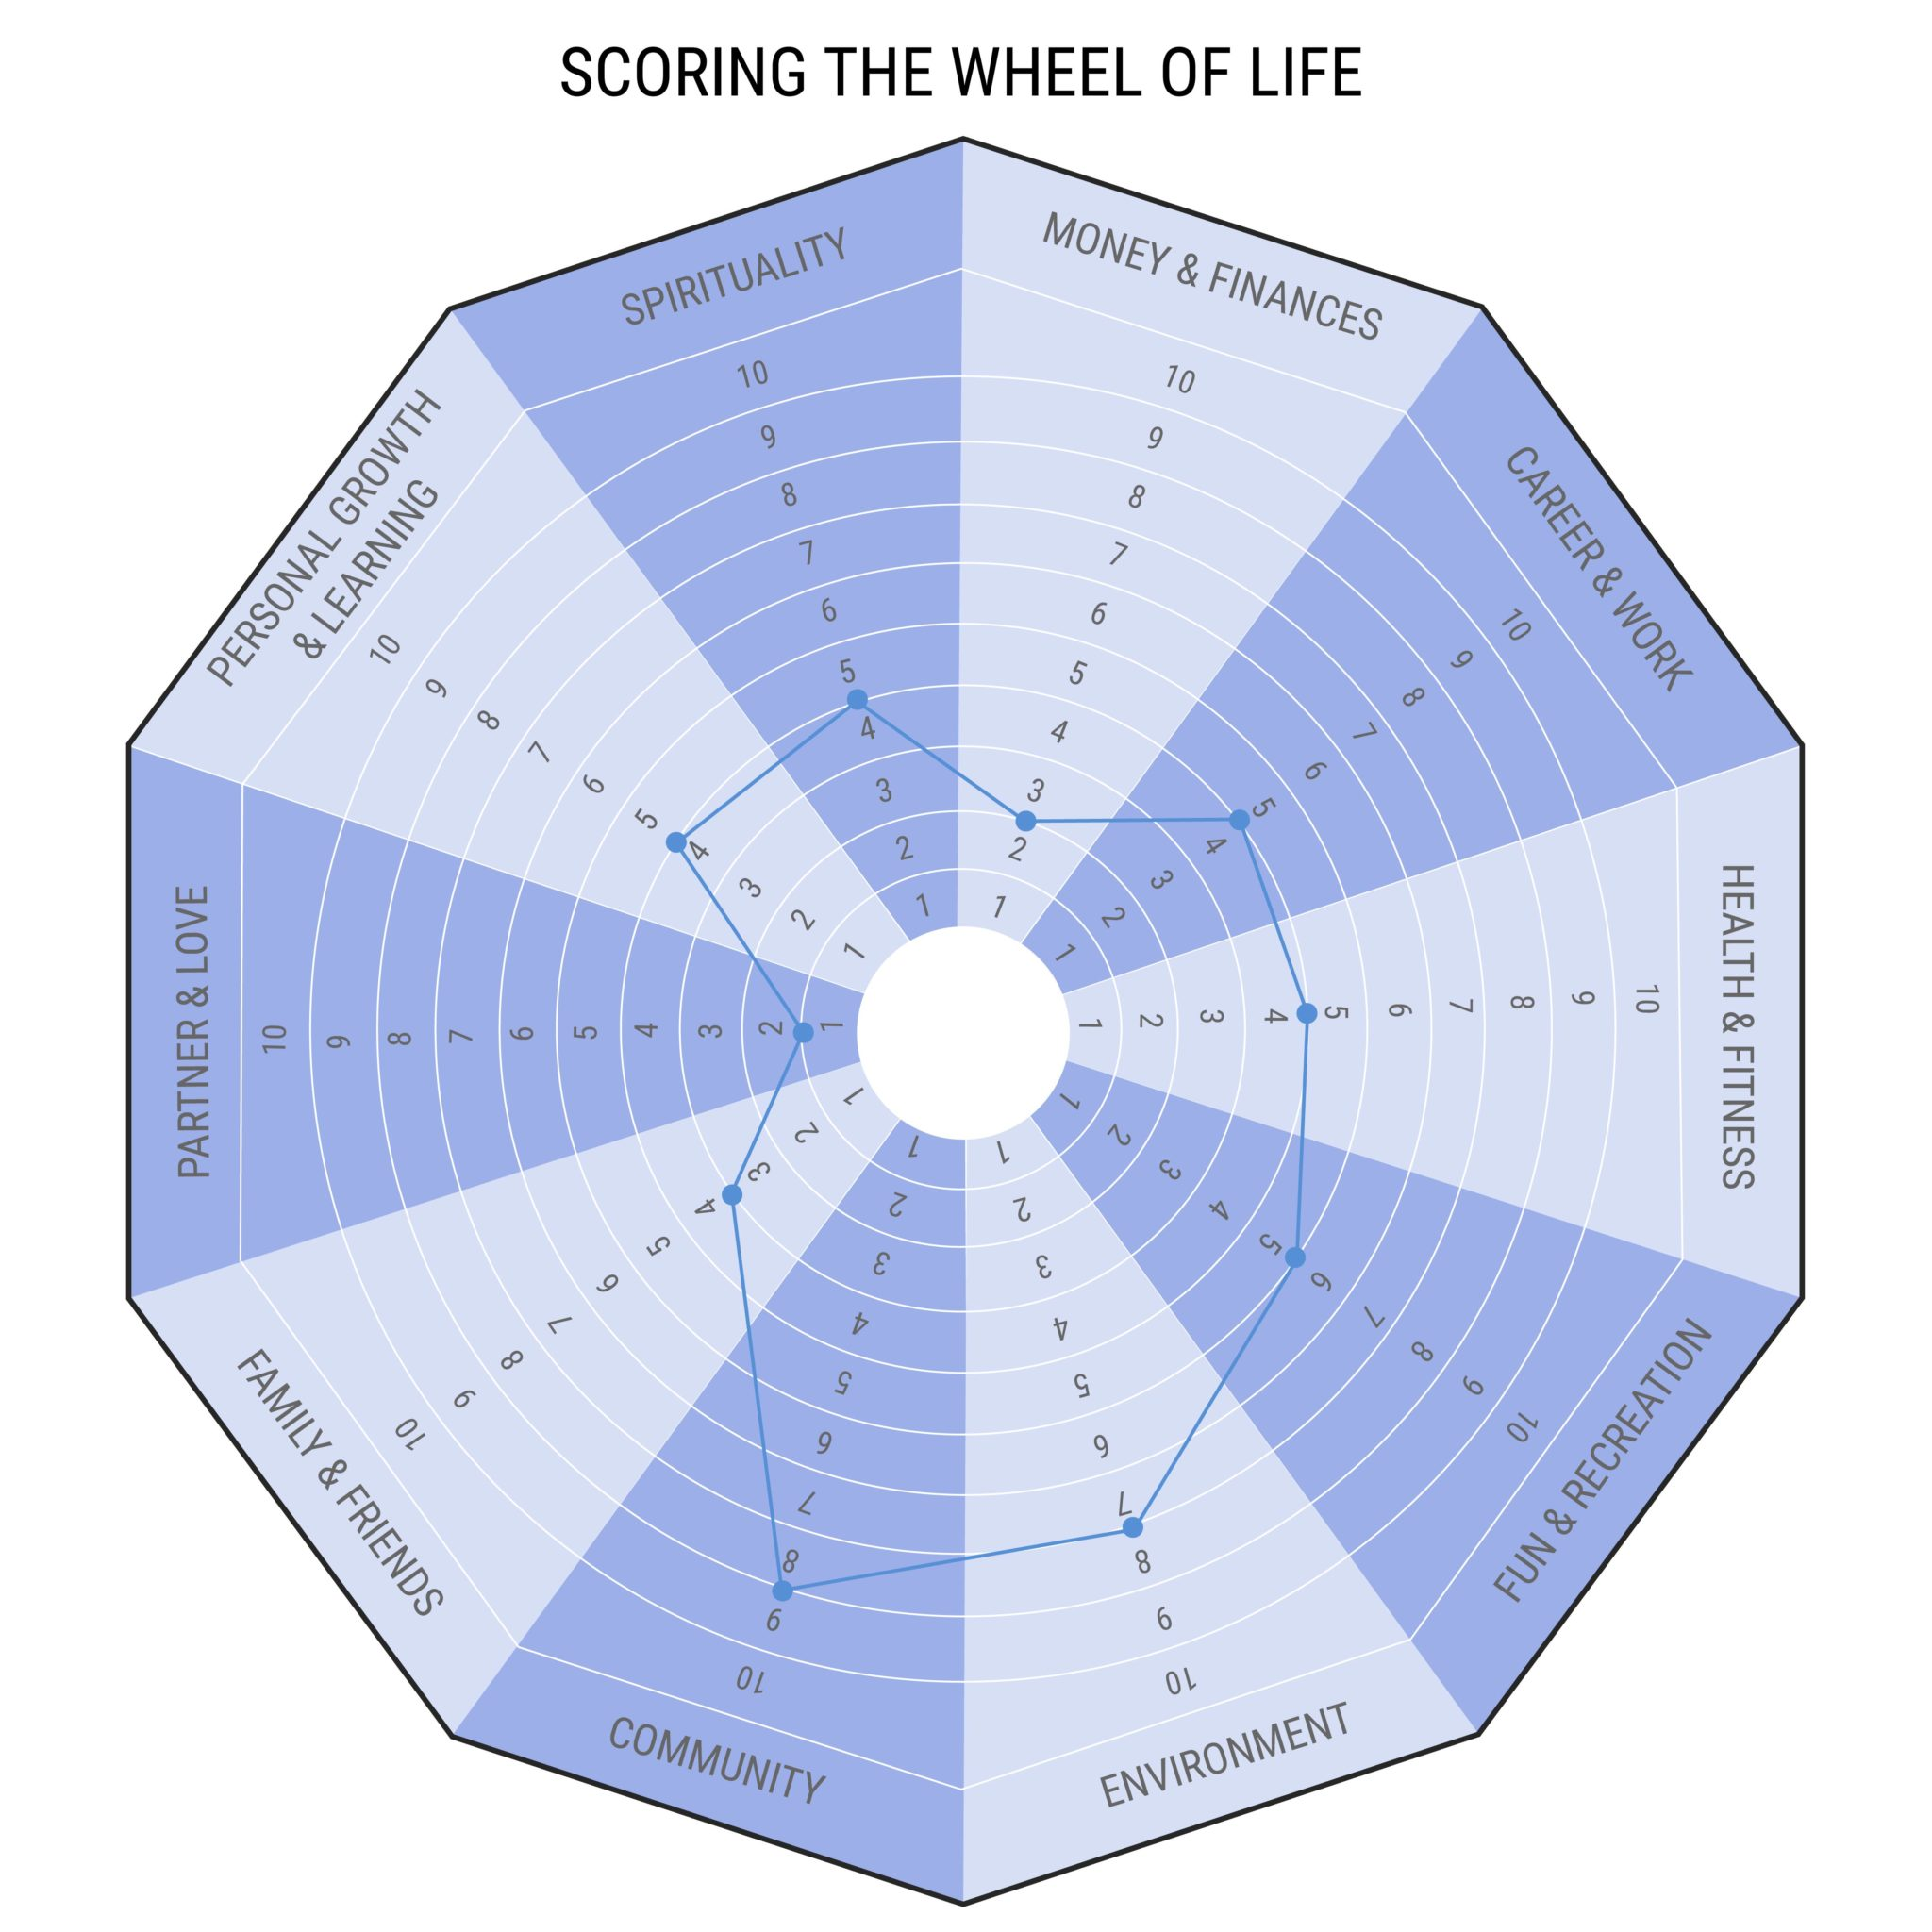 SCORING THE WHEEL OF LIFE